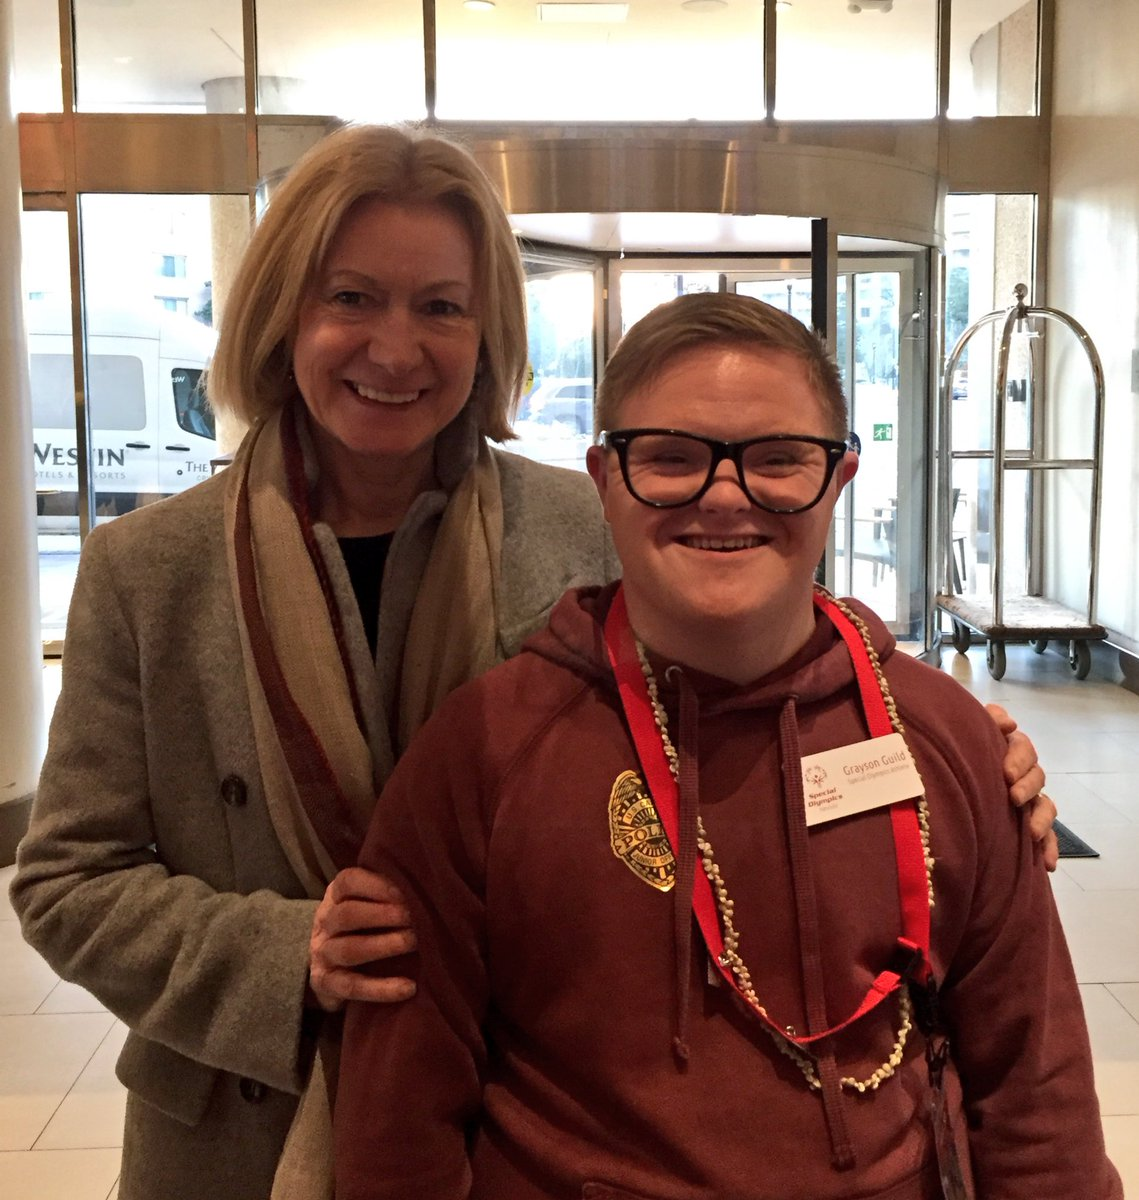 Play Together. Learn Together. Live Together!   Our athlete Grayson met up with @MaryDavisSO as we advocate for inclusion & spread the word about @SpecialOlympics in DC this week. #SOHillDay https://t.co/0zuCRBEdfH